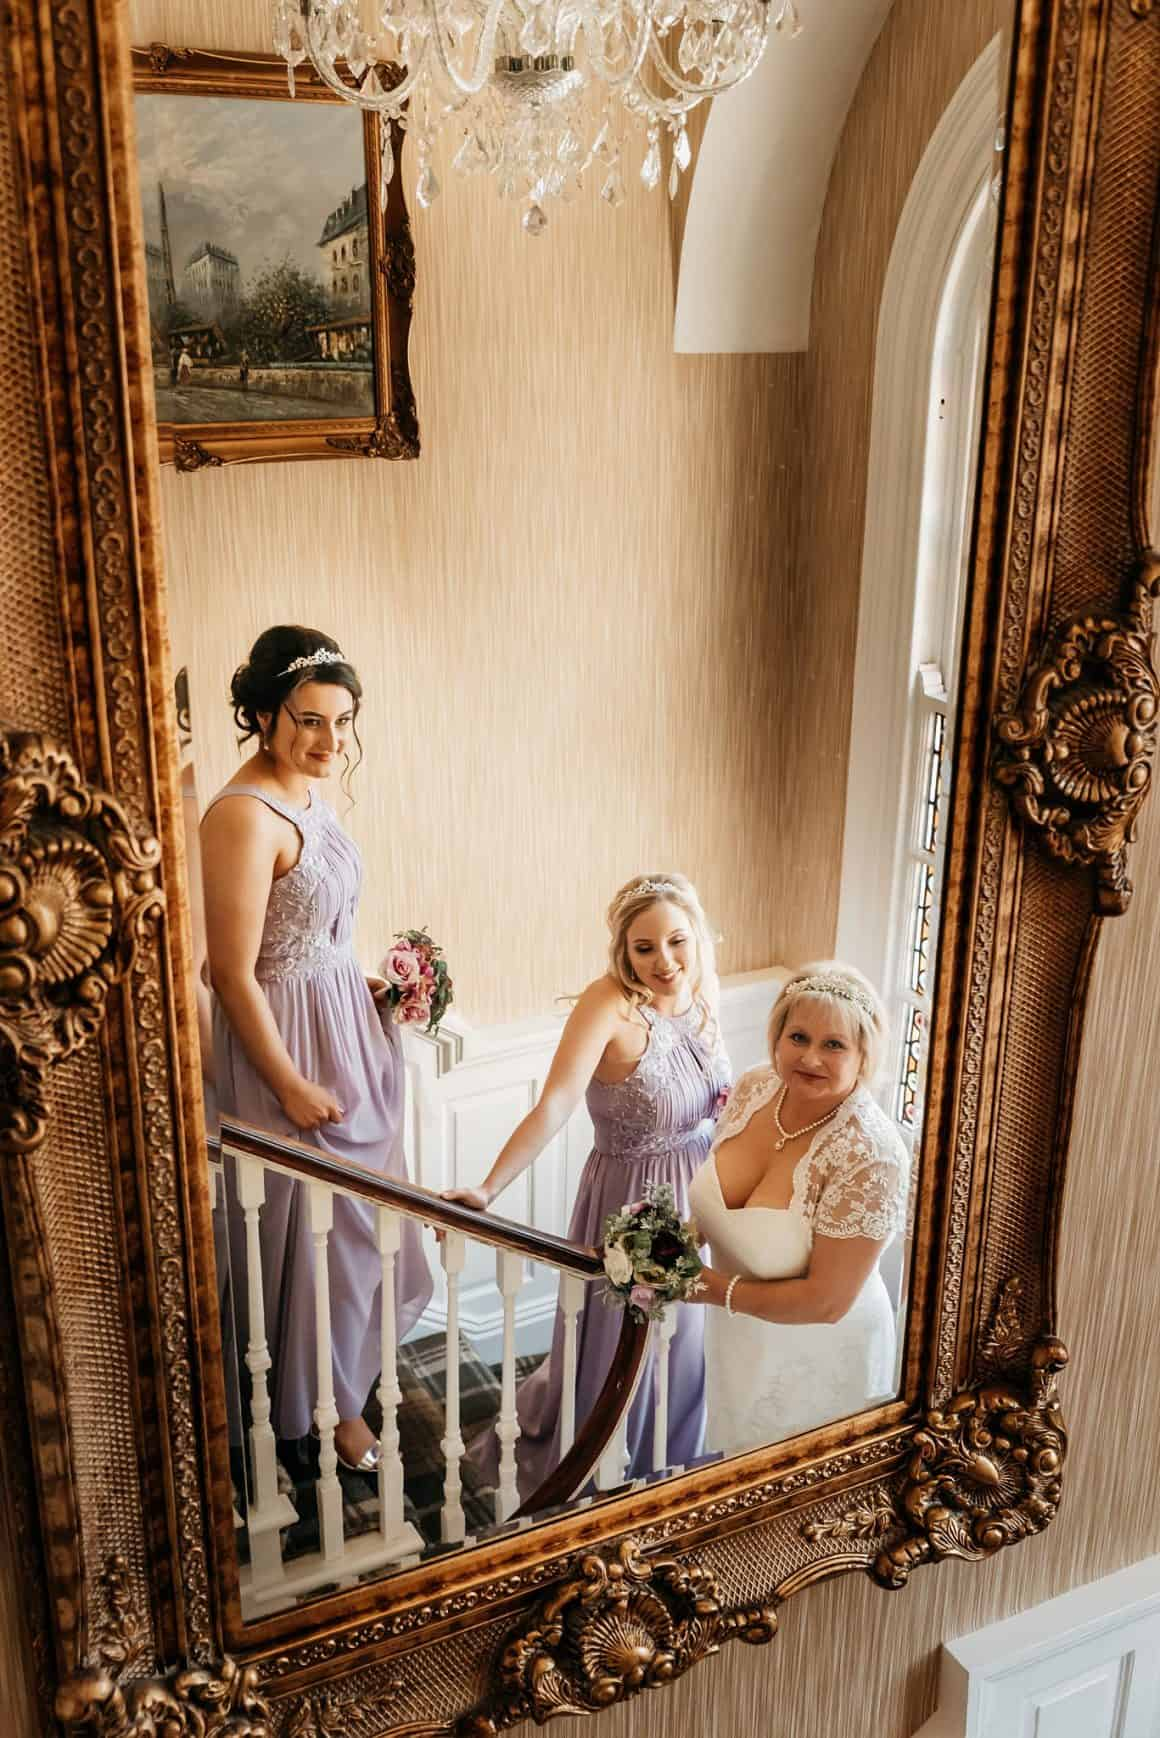 This image shows a bride and two bridesmaids looking into the mirror at the wedding venue king Croft Hotel, Pontefract